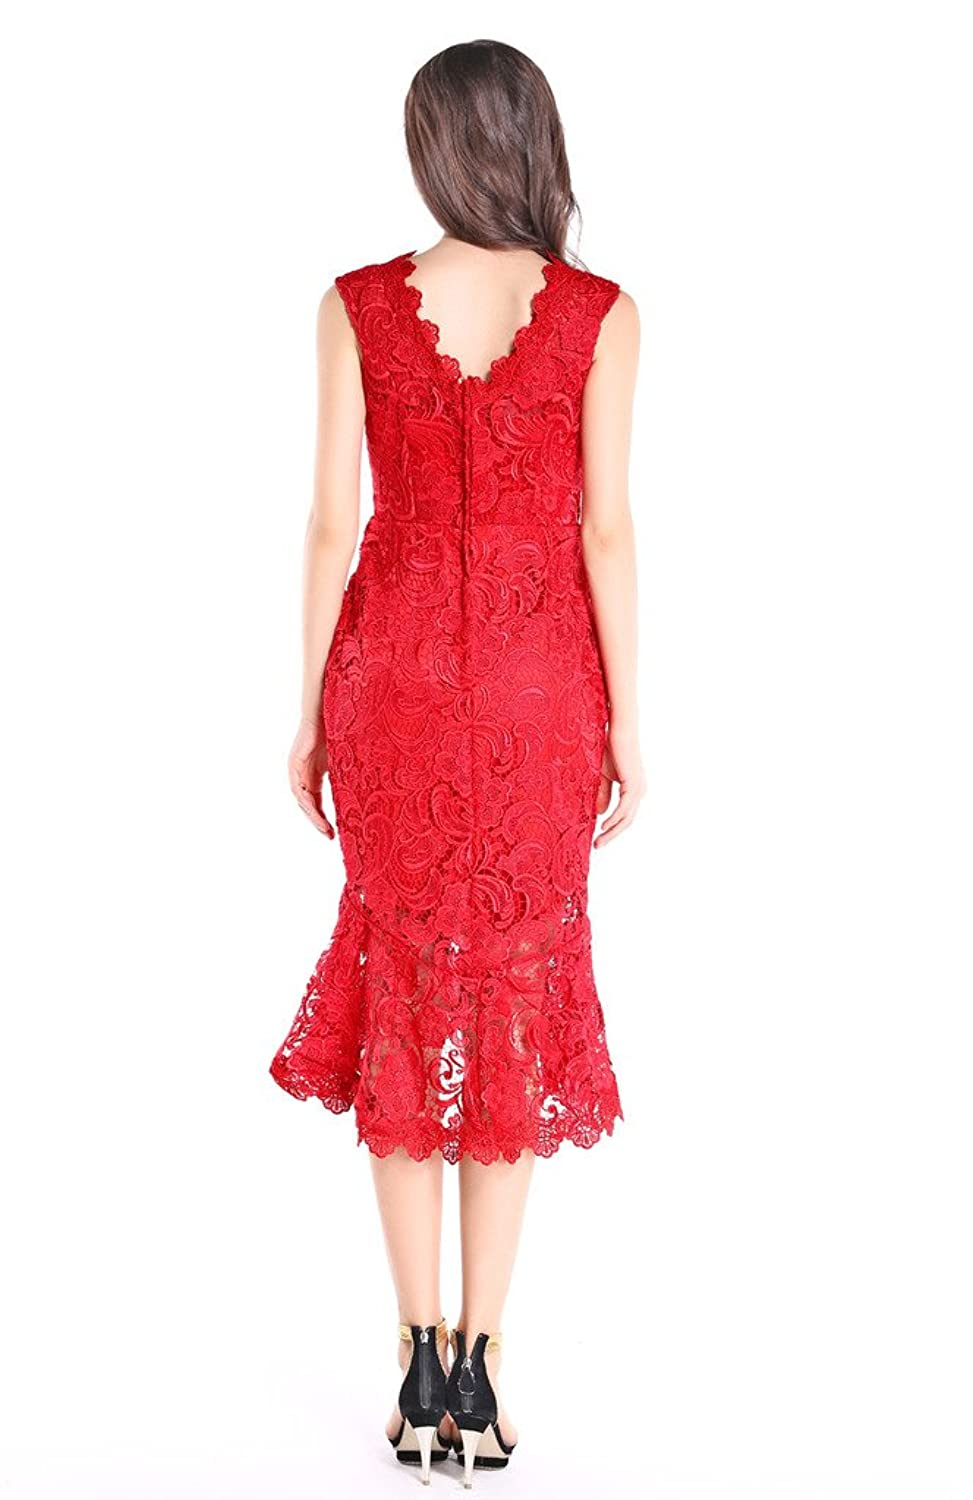 Amazon.com: Hanayome Womens High Neck Mermaid Vintage Red Lace Party Prom Dress: Clothing